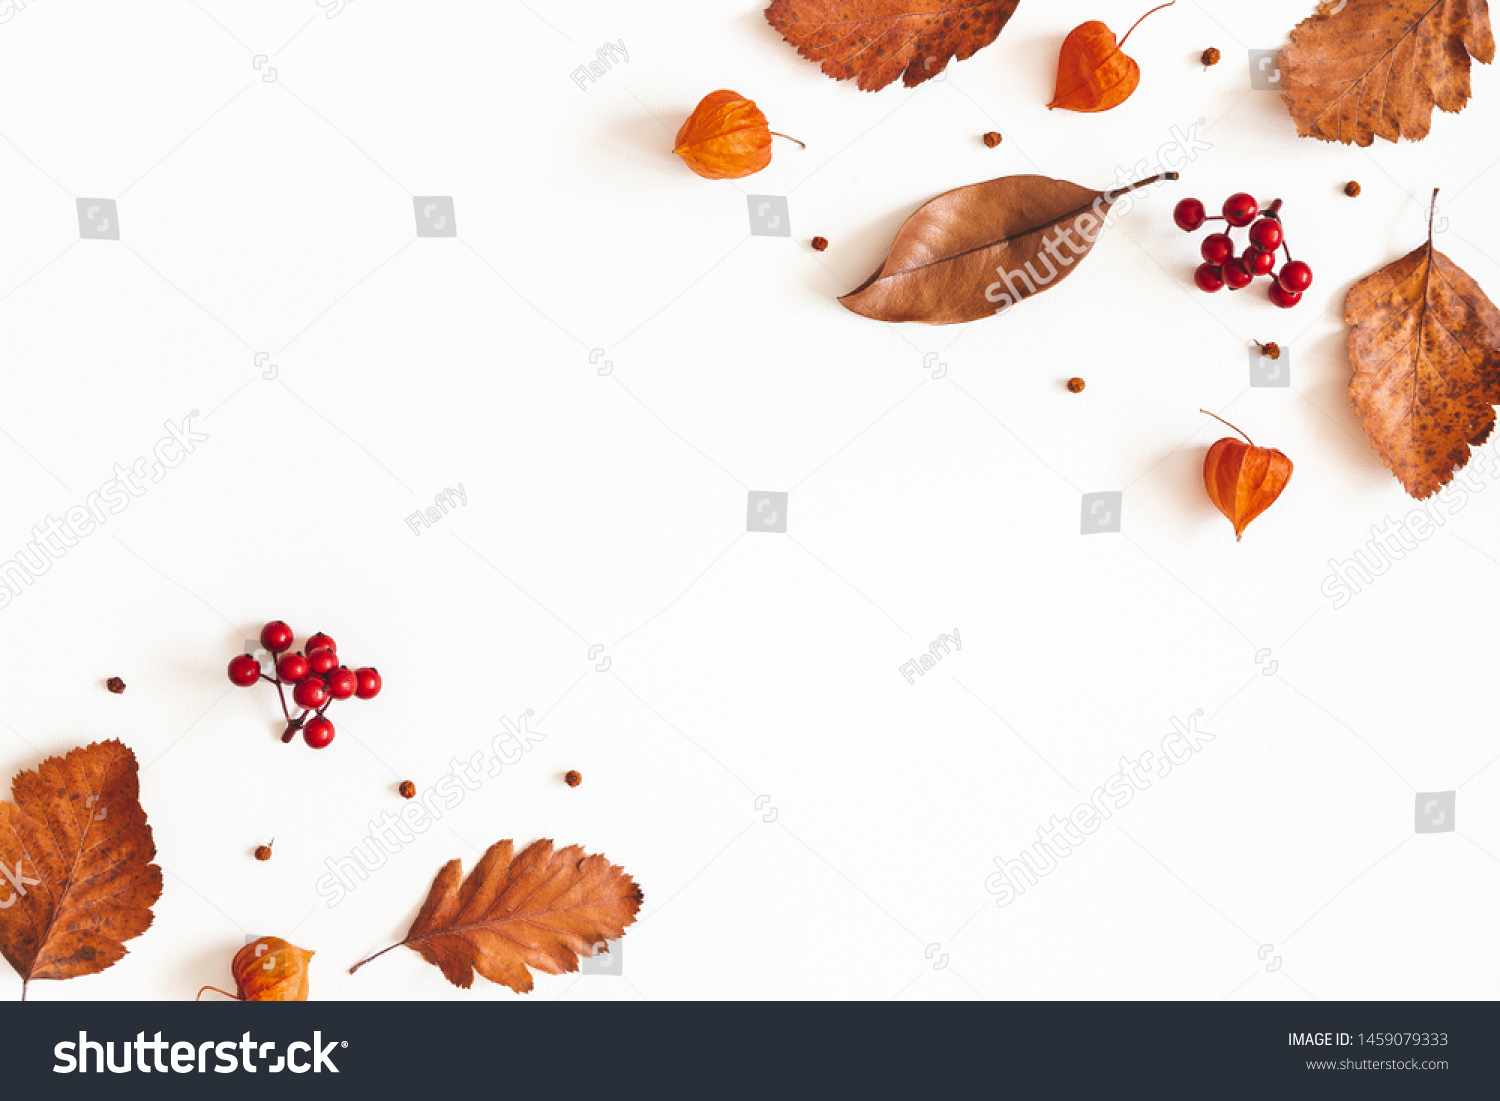 Autumn composition. Dried leaves, flowers, rowan berries on white background. Autumn, fall, thanksgiving day concept. Flat lay, top view, copy space #1459079333